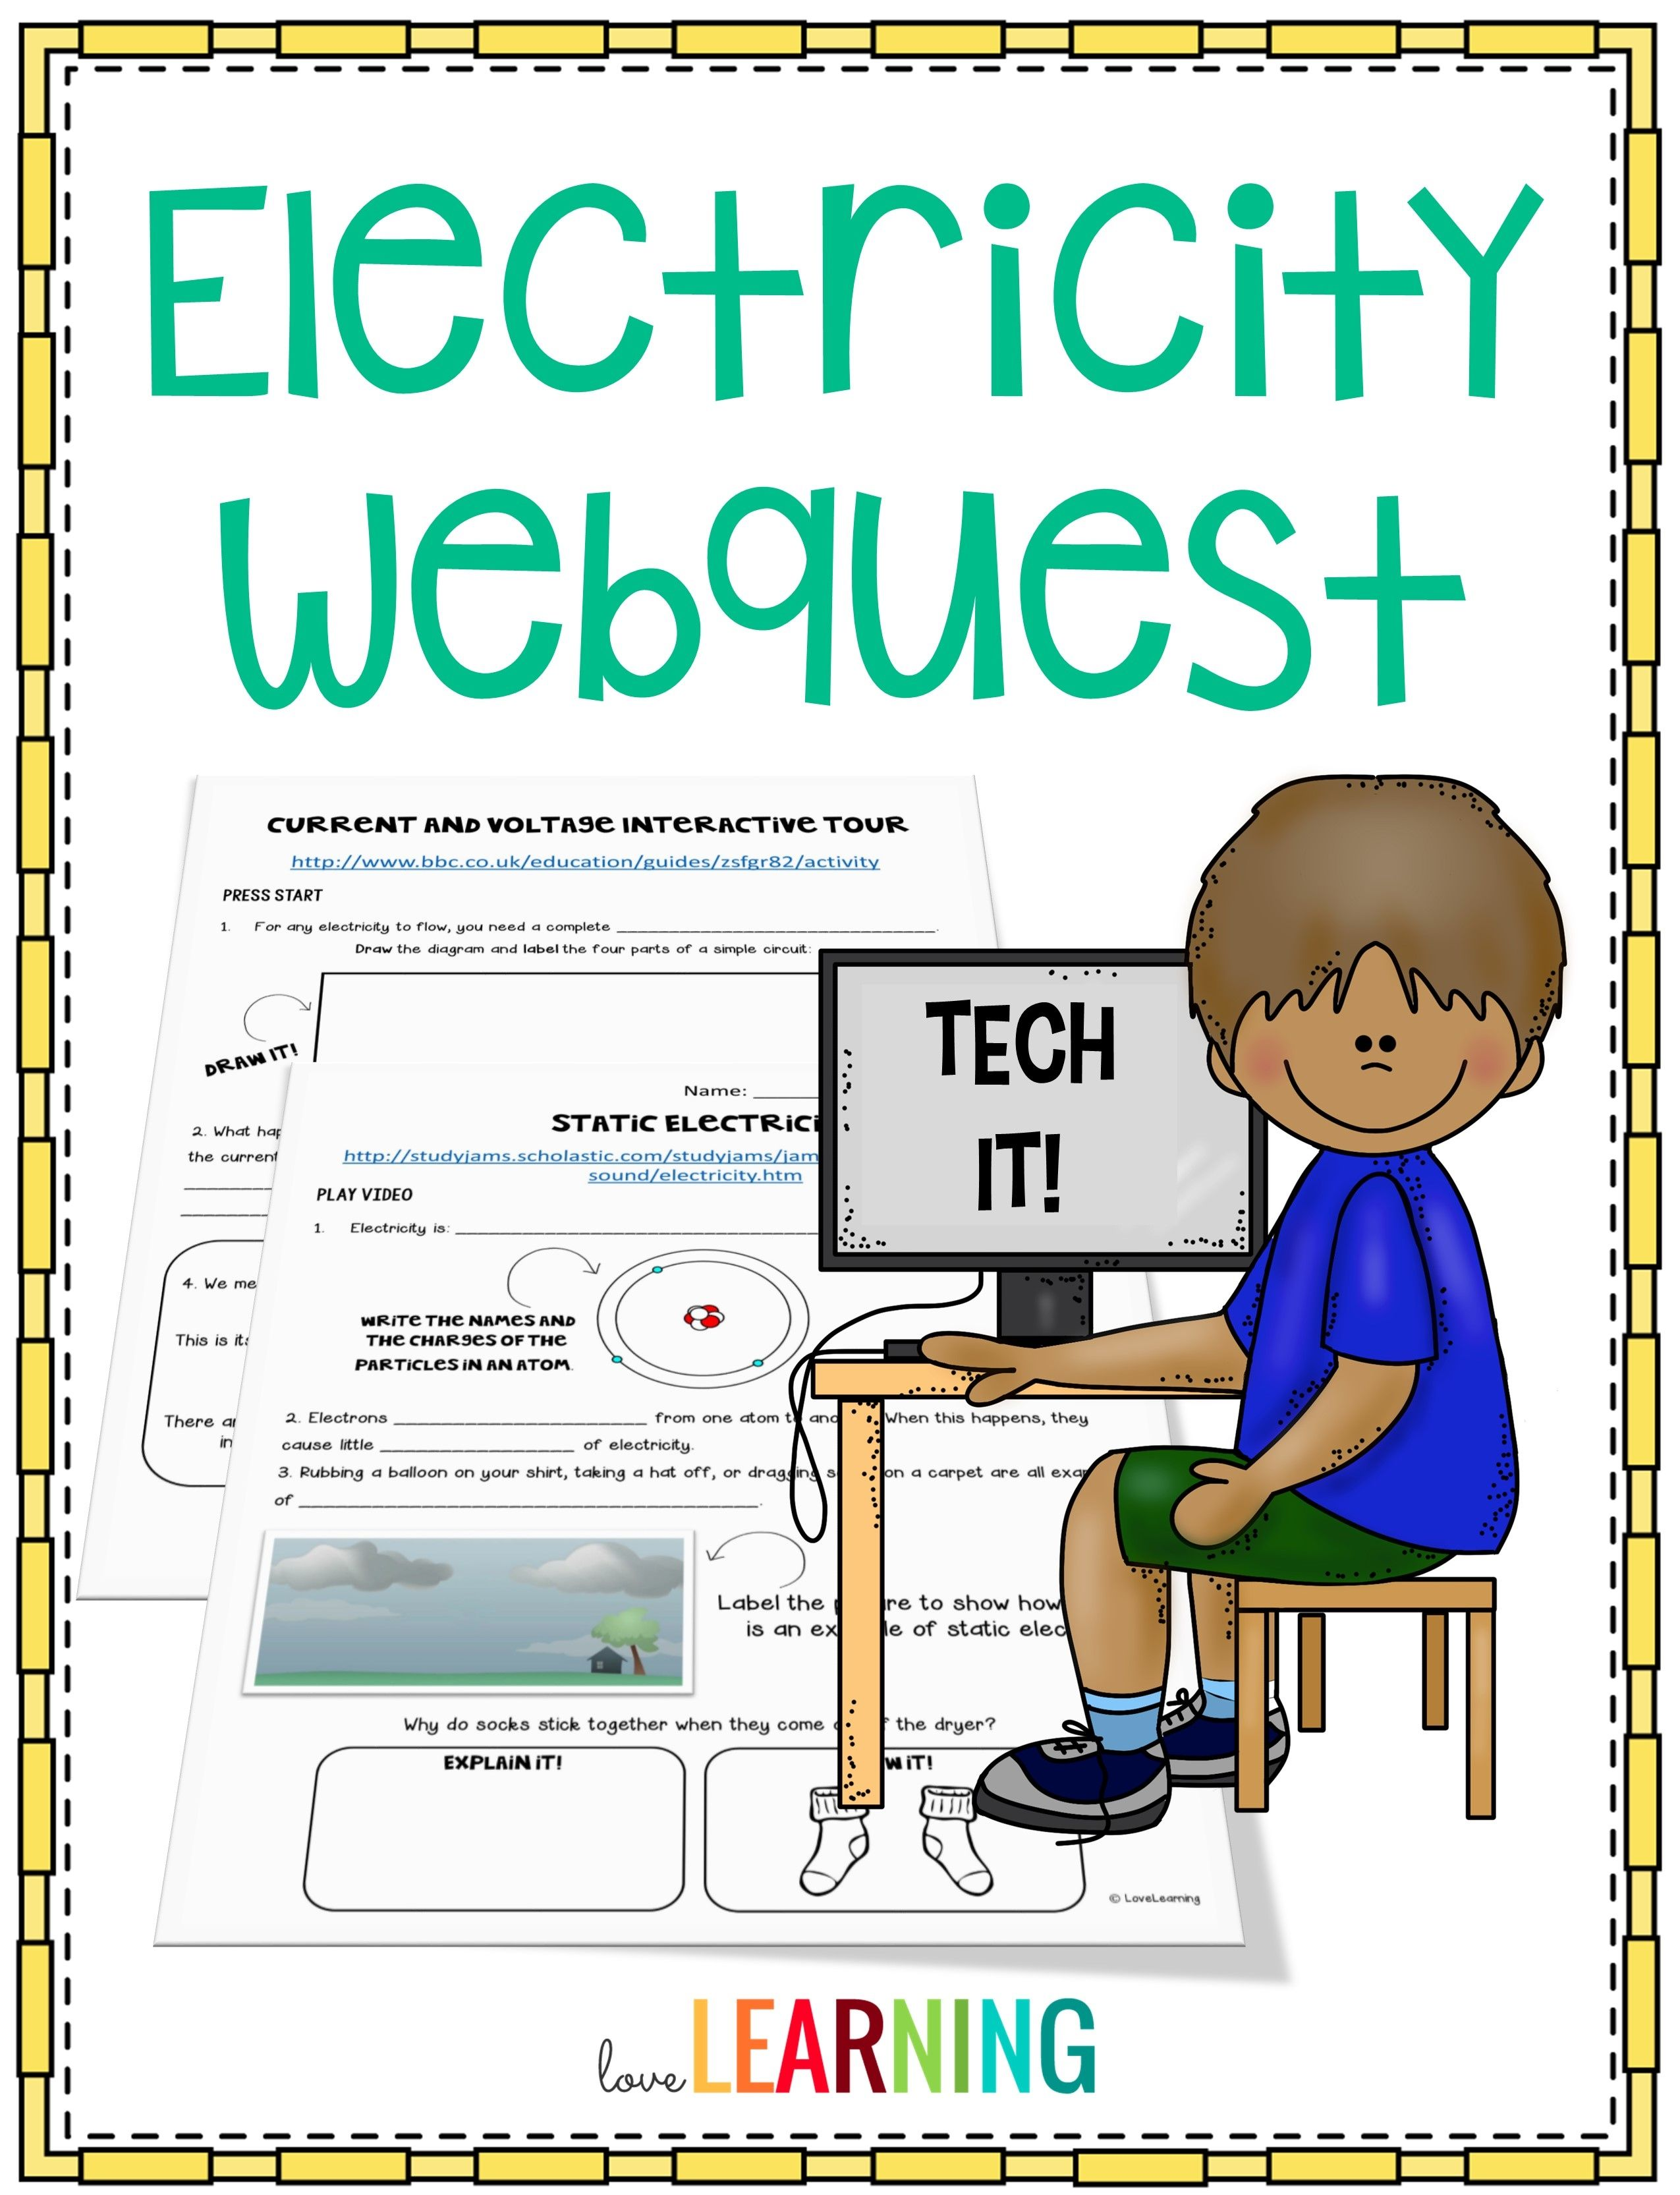 Electricity Webquest